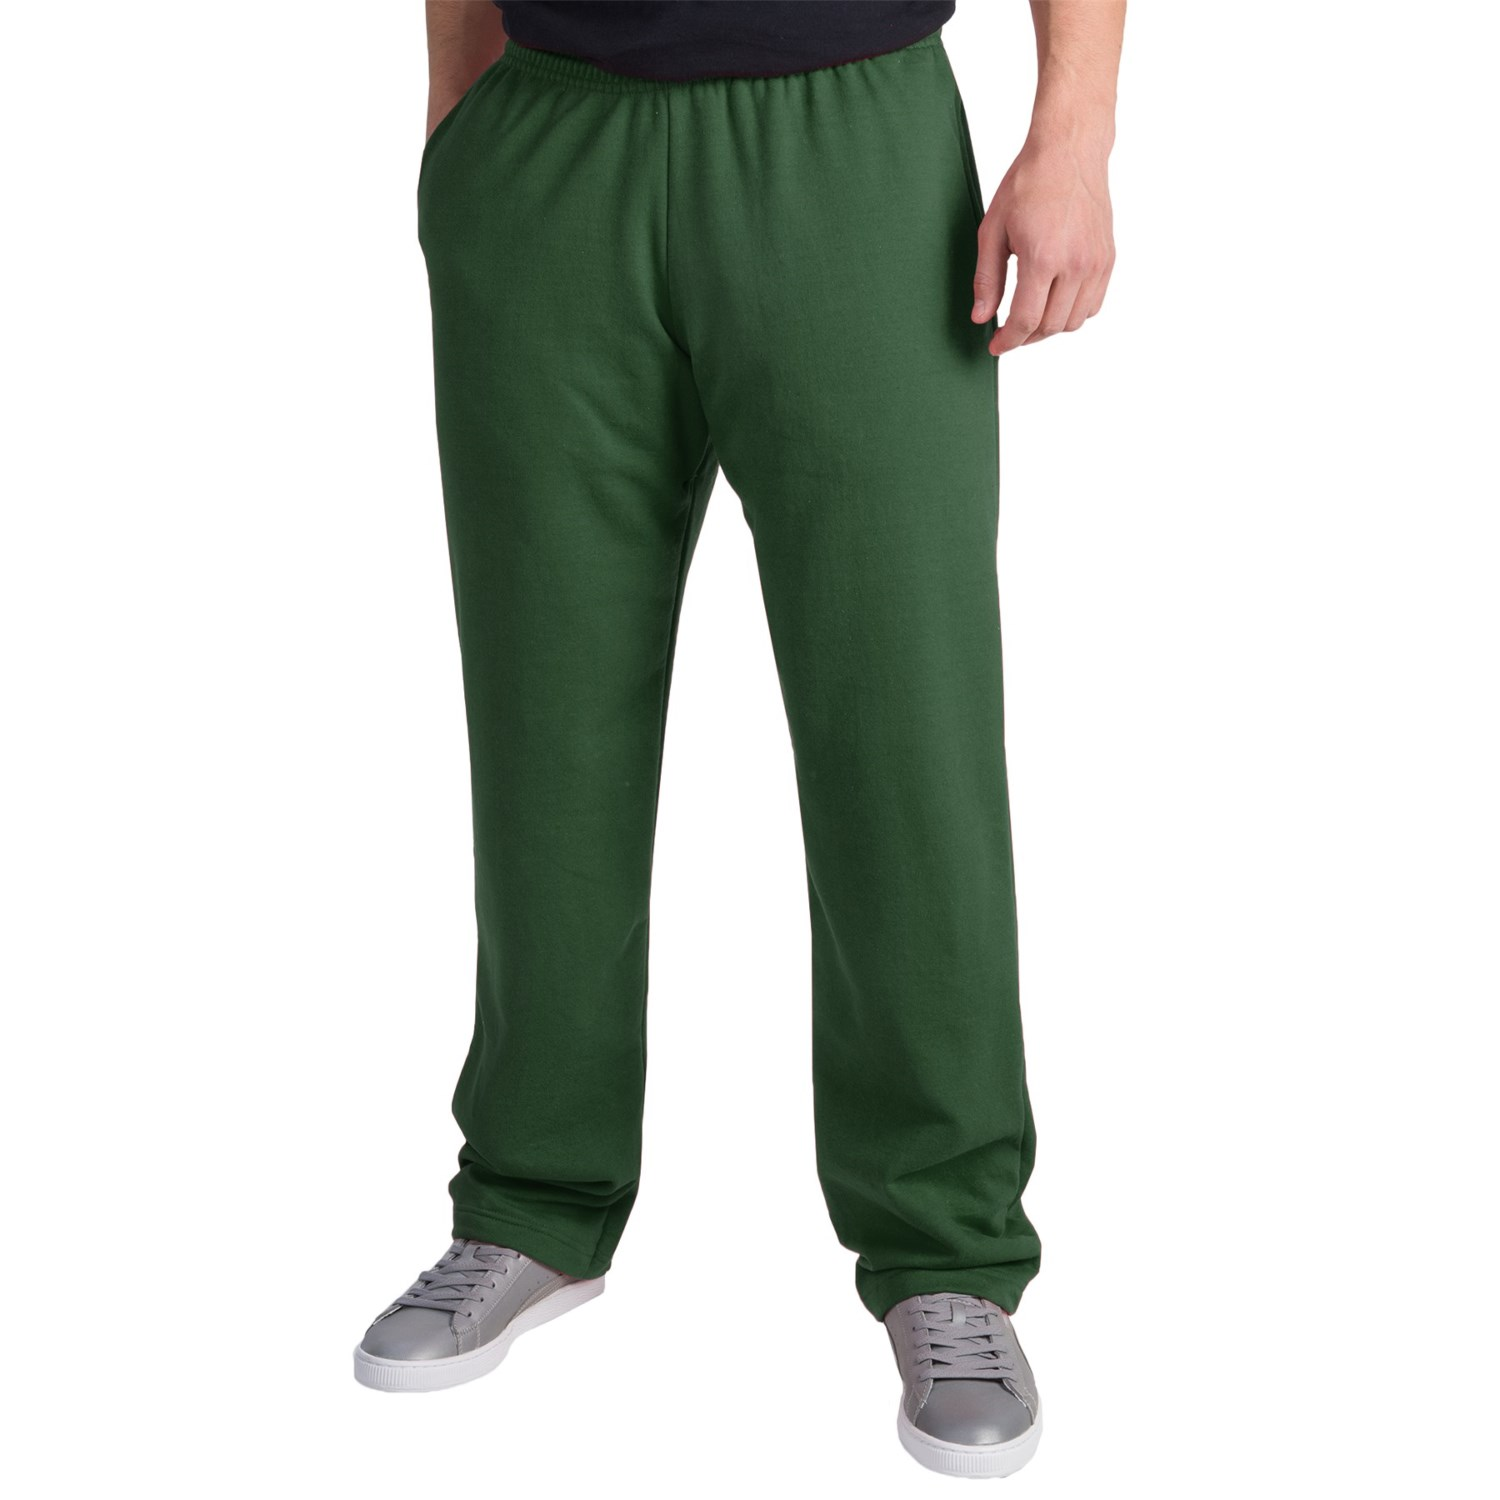 Shop for hanes sweatpants boys online at Target. Free shipping on purchases over $35 and save 5% every day with your Target REDcard.